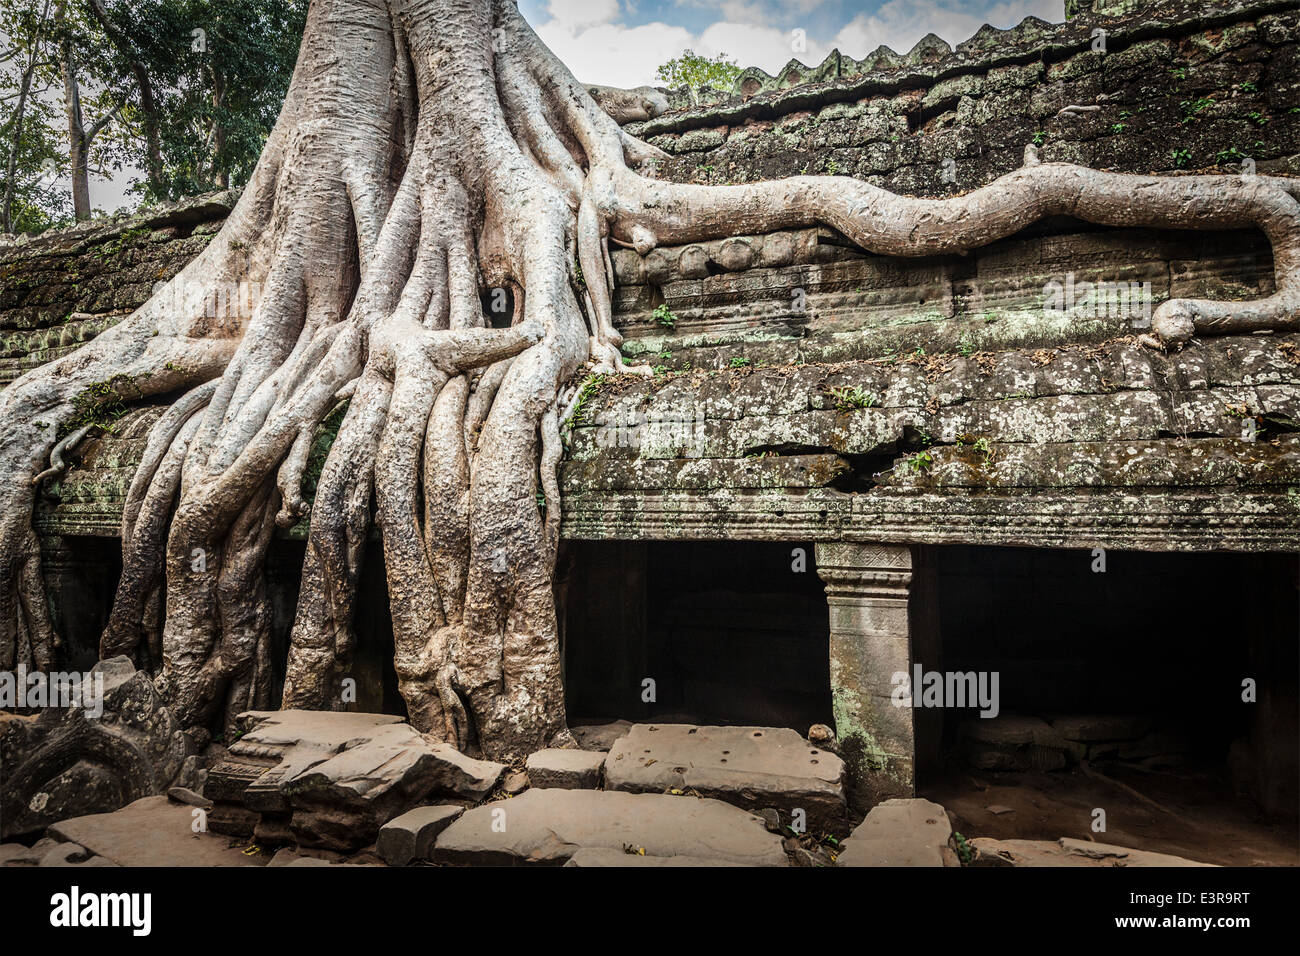 Travel Cambodia concept background - ancient stone door and tree roots, Ta Prohm temple ruins, Angkor, Cambodia - Stock Image